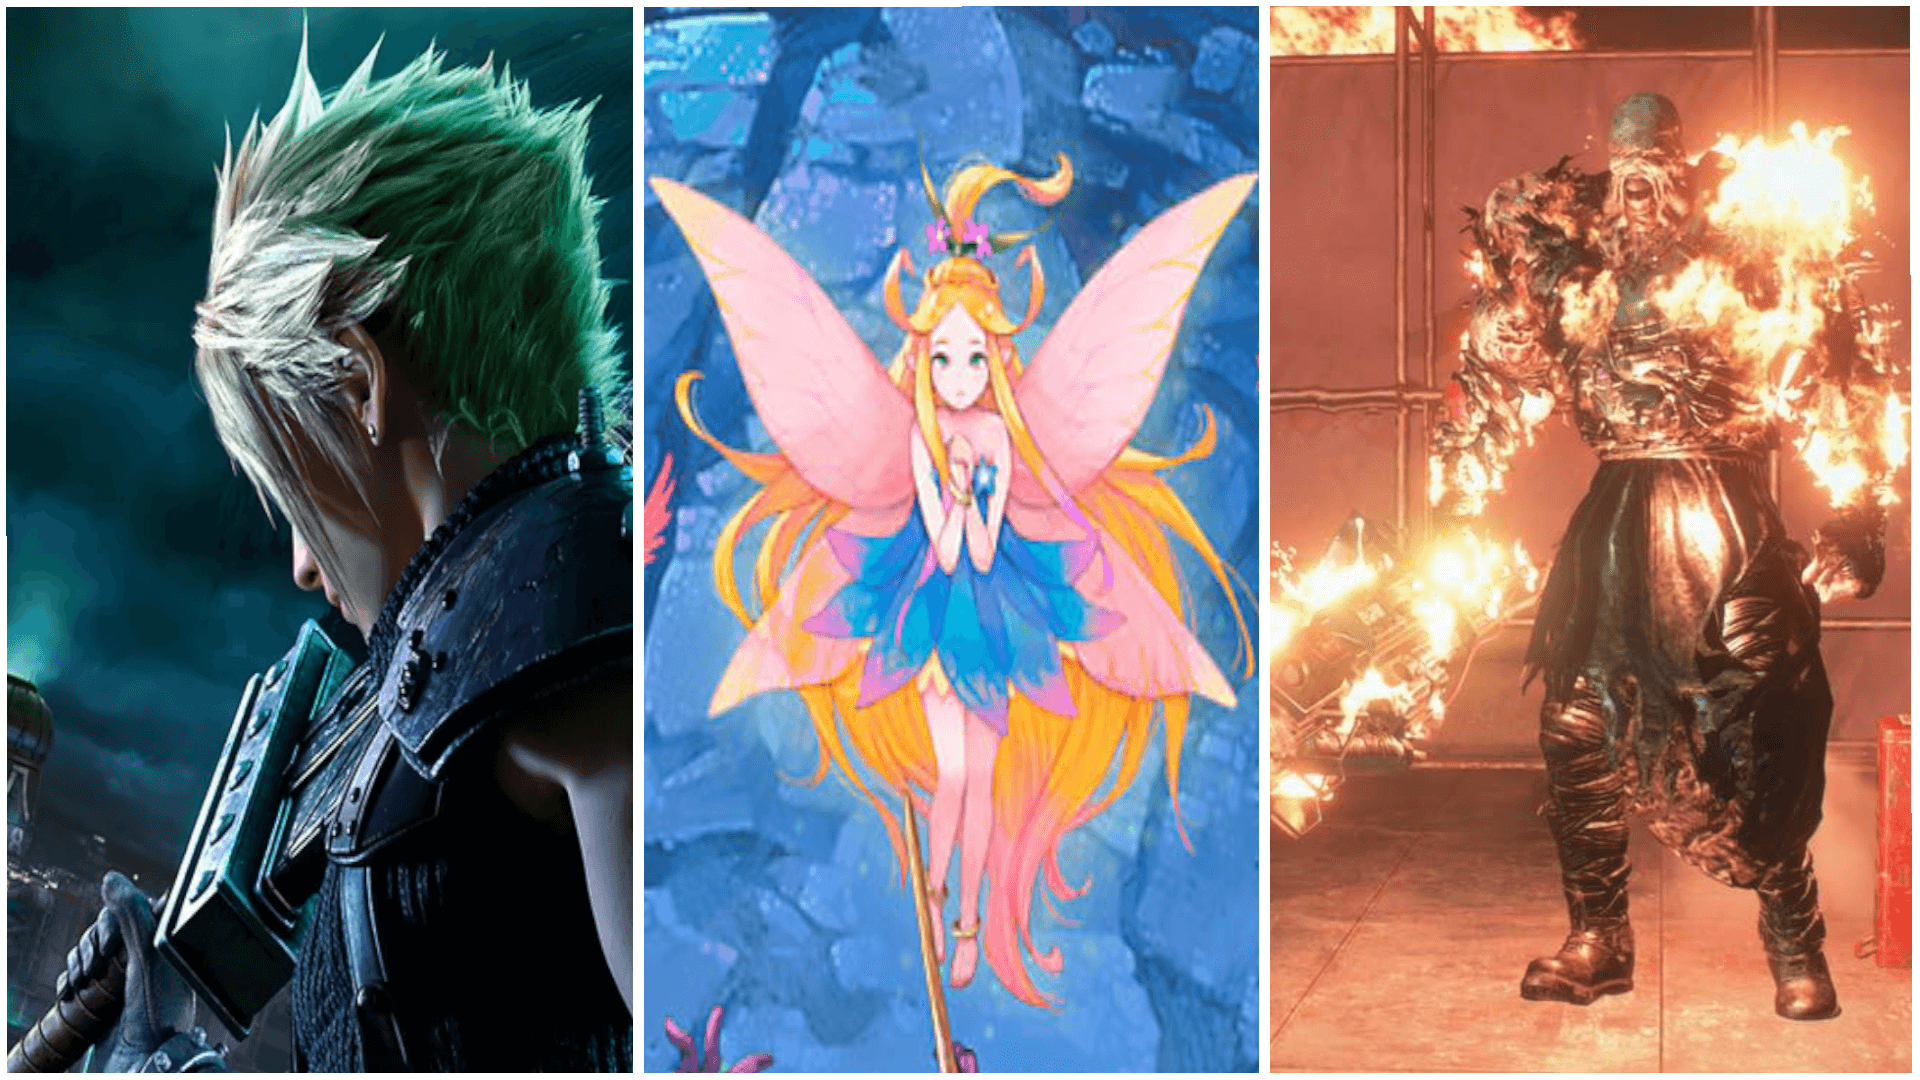 Our Top Choices for Best Games in April 2020